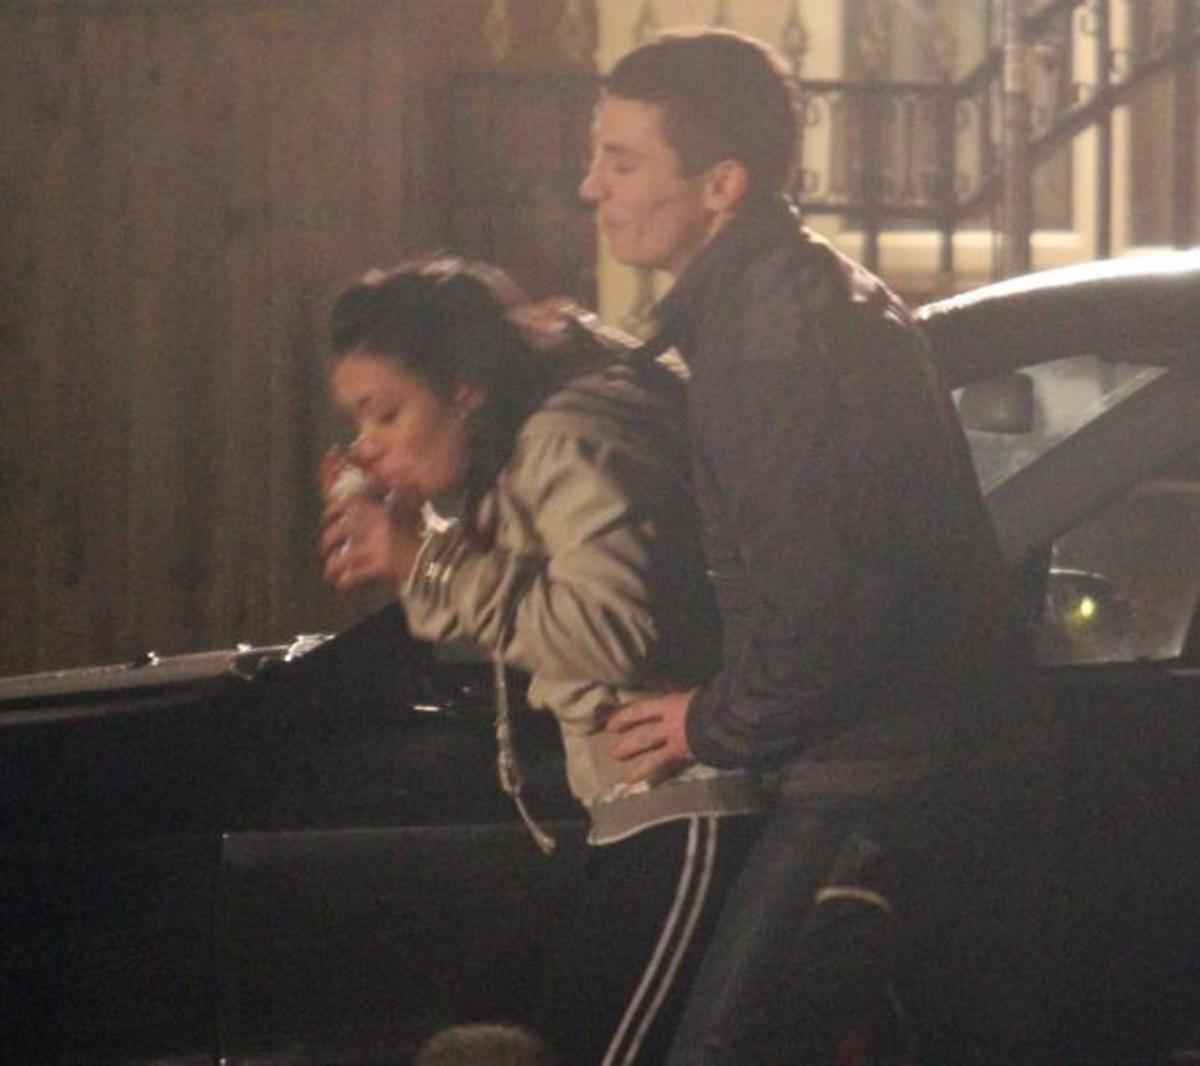 When Whitney changes her mind, Rob forces her in the car and to the party he has organised